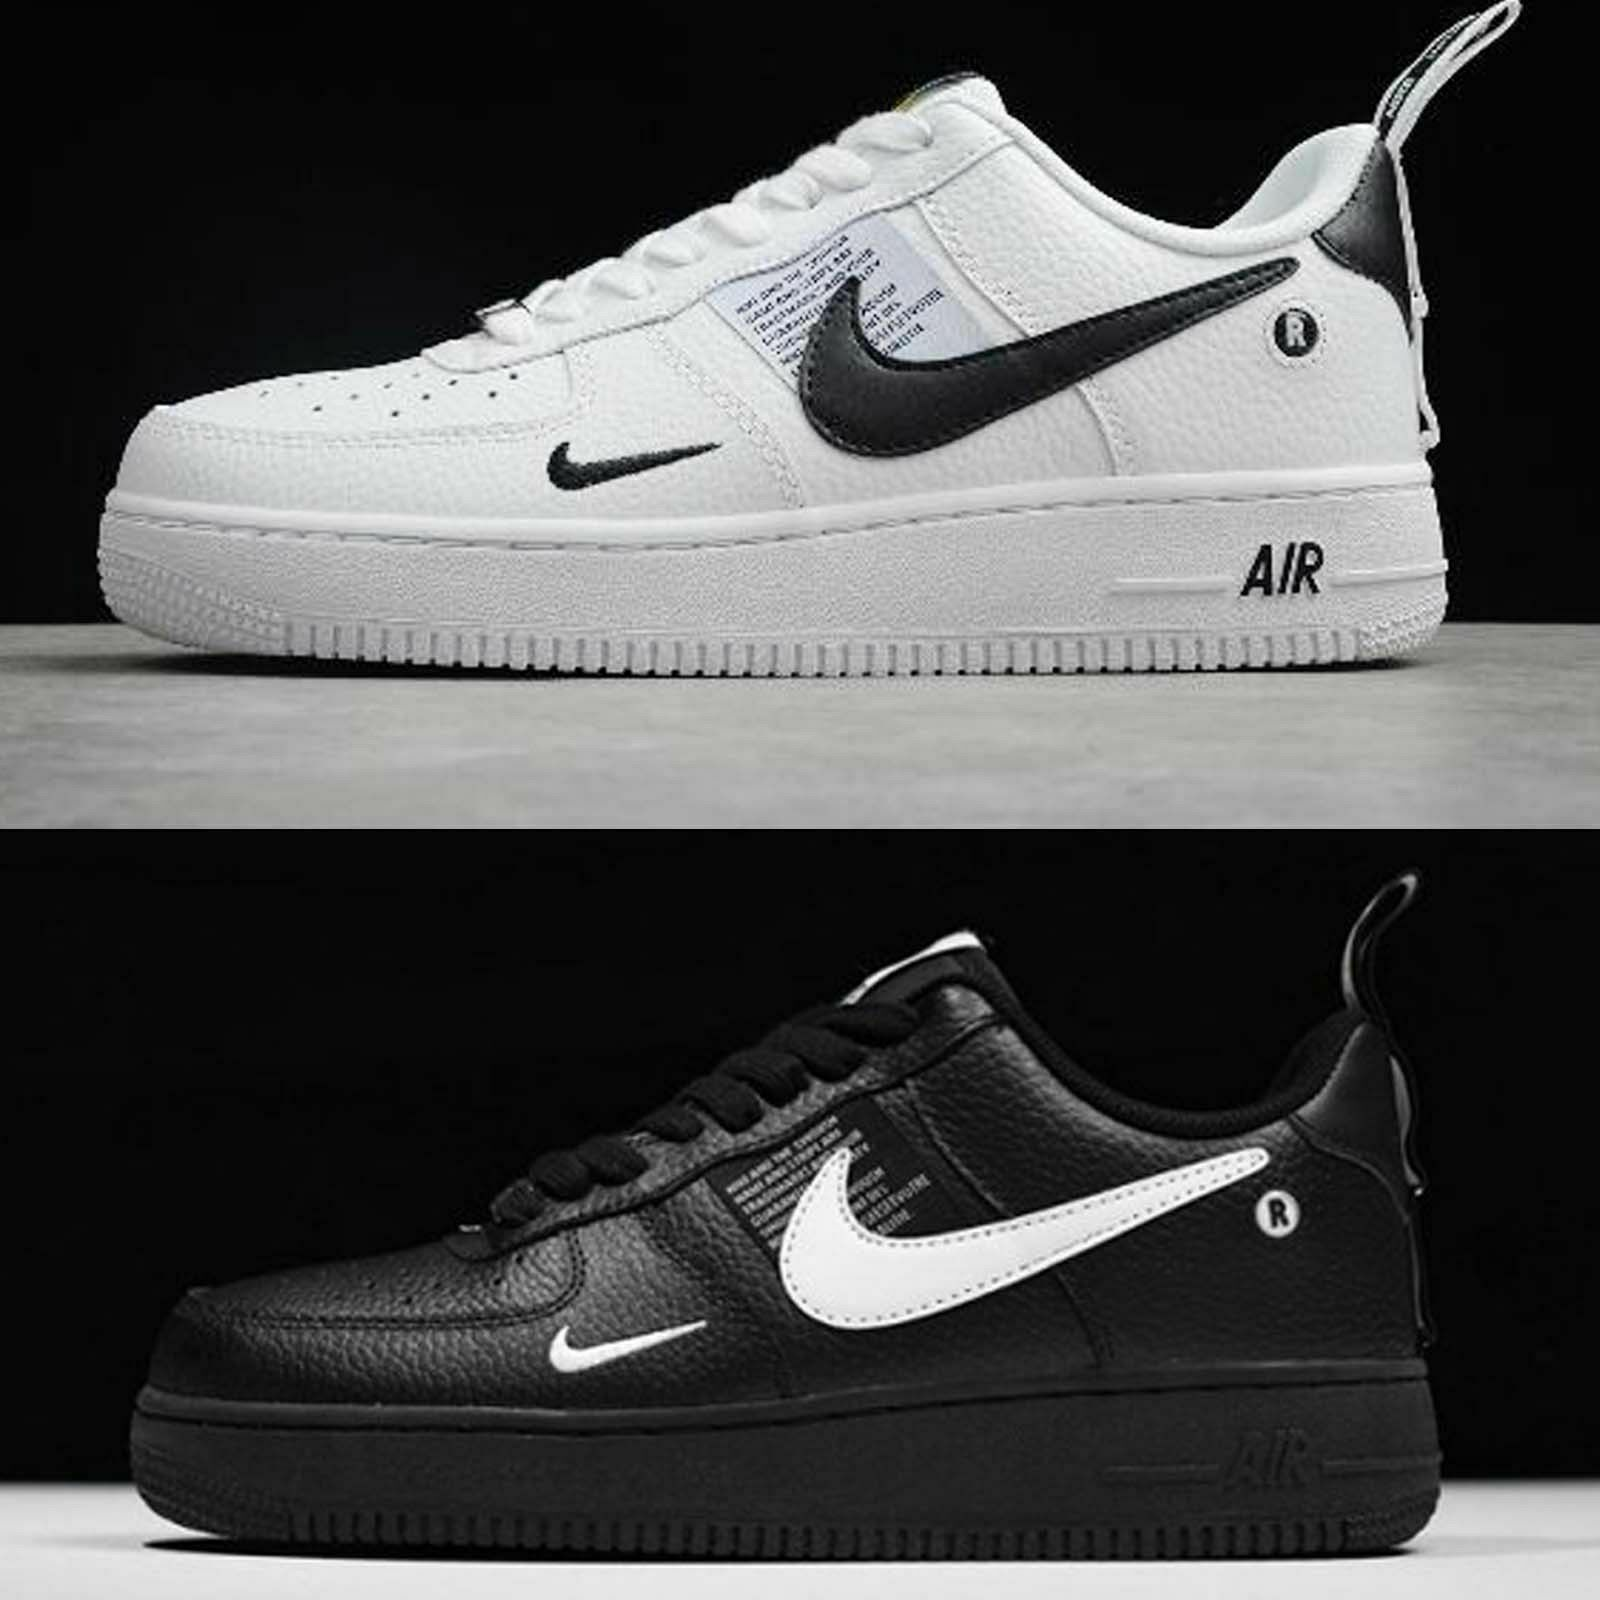 nike air force 1 nero e bianco